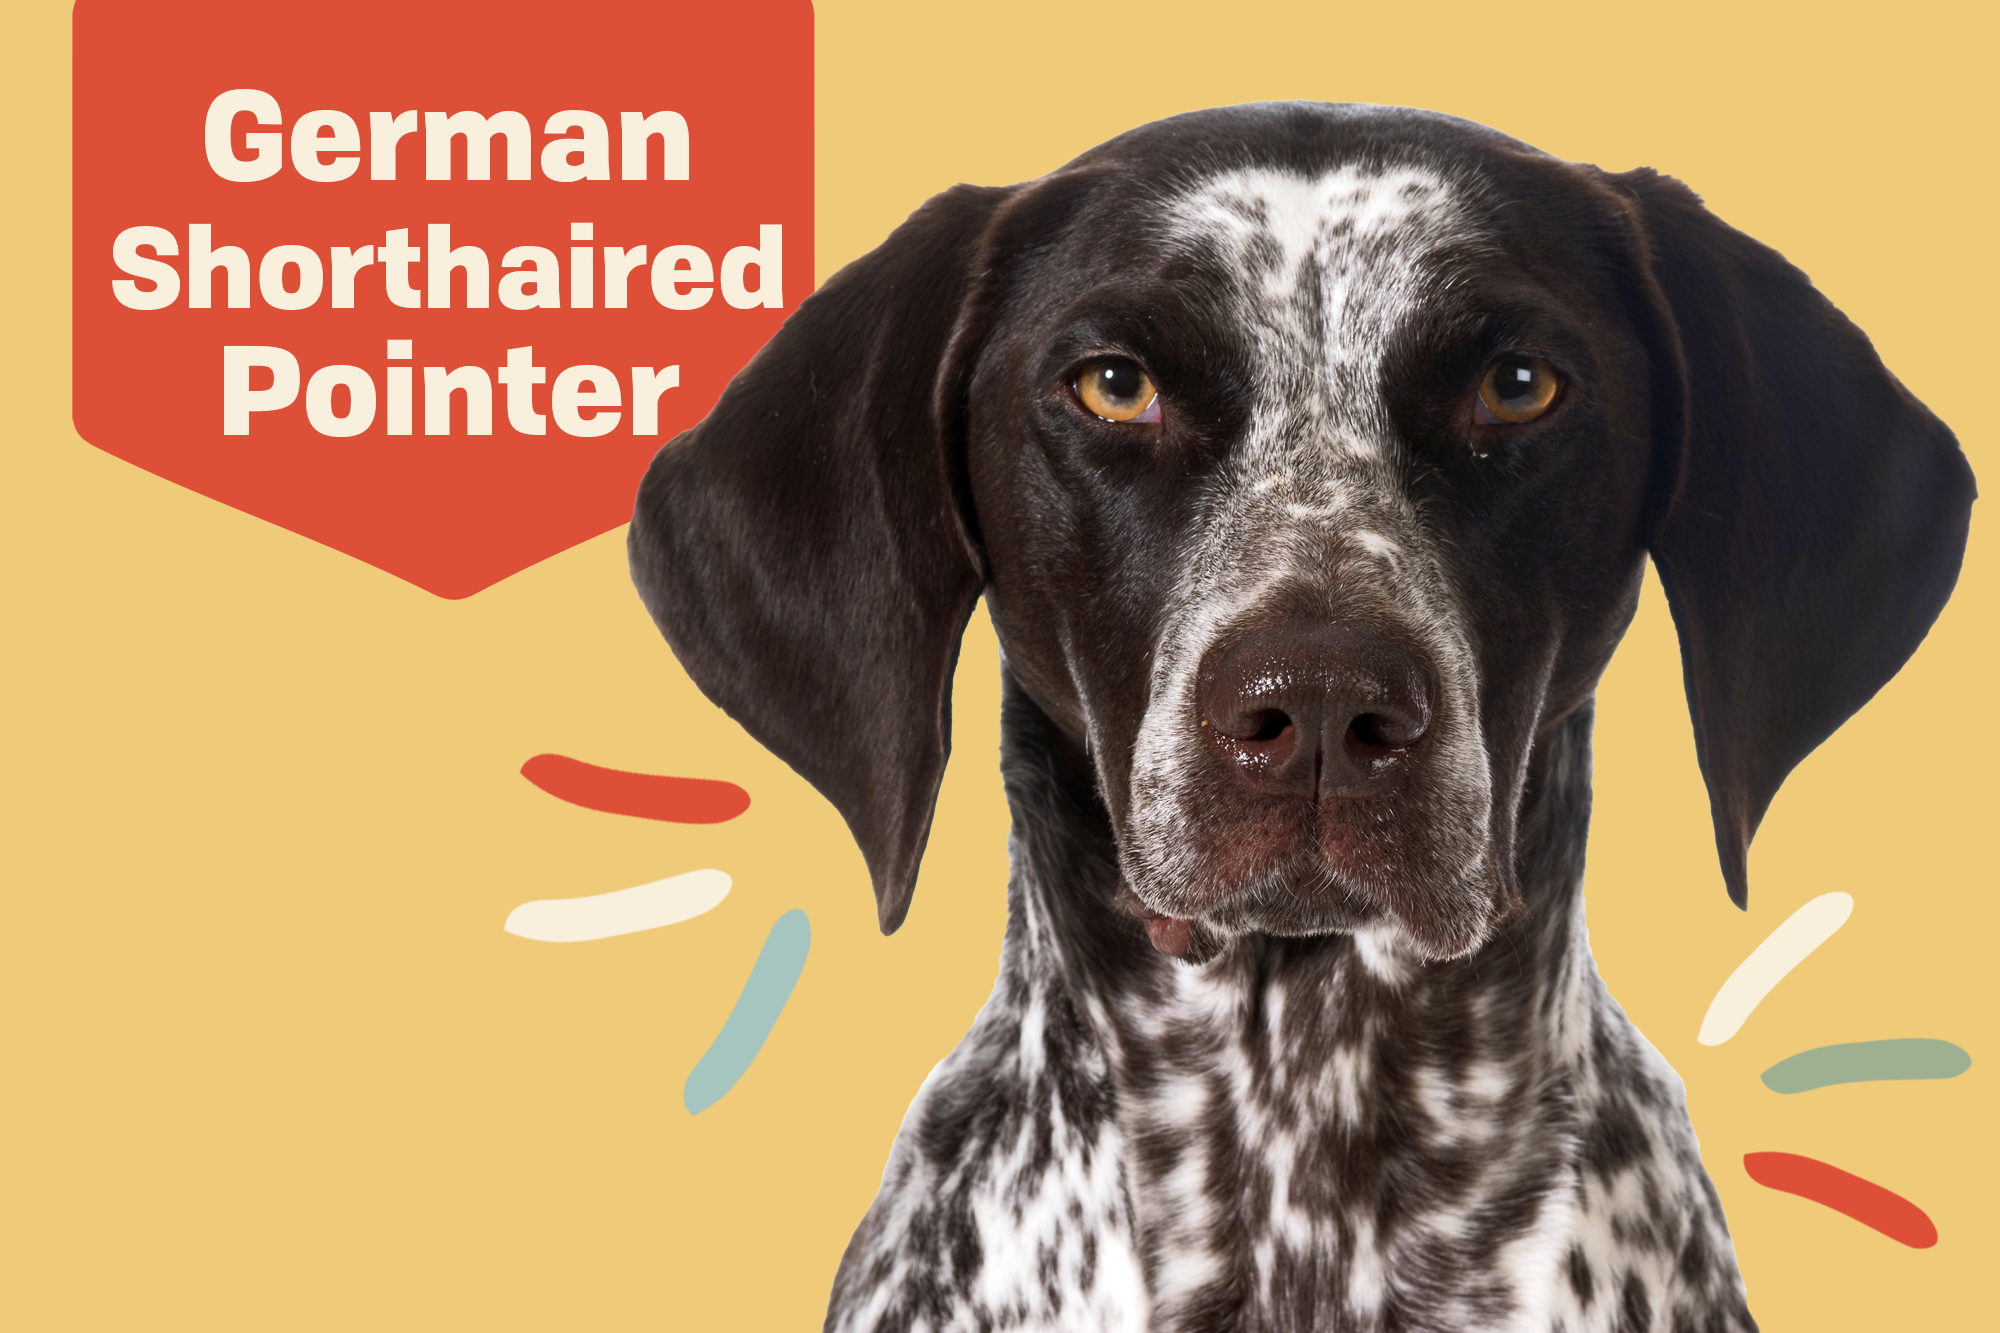 German Shorthaired Pointer Gsp Dog Breed Information Characteristics Daily Paws